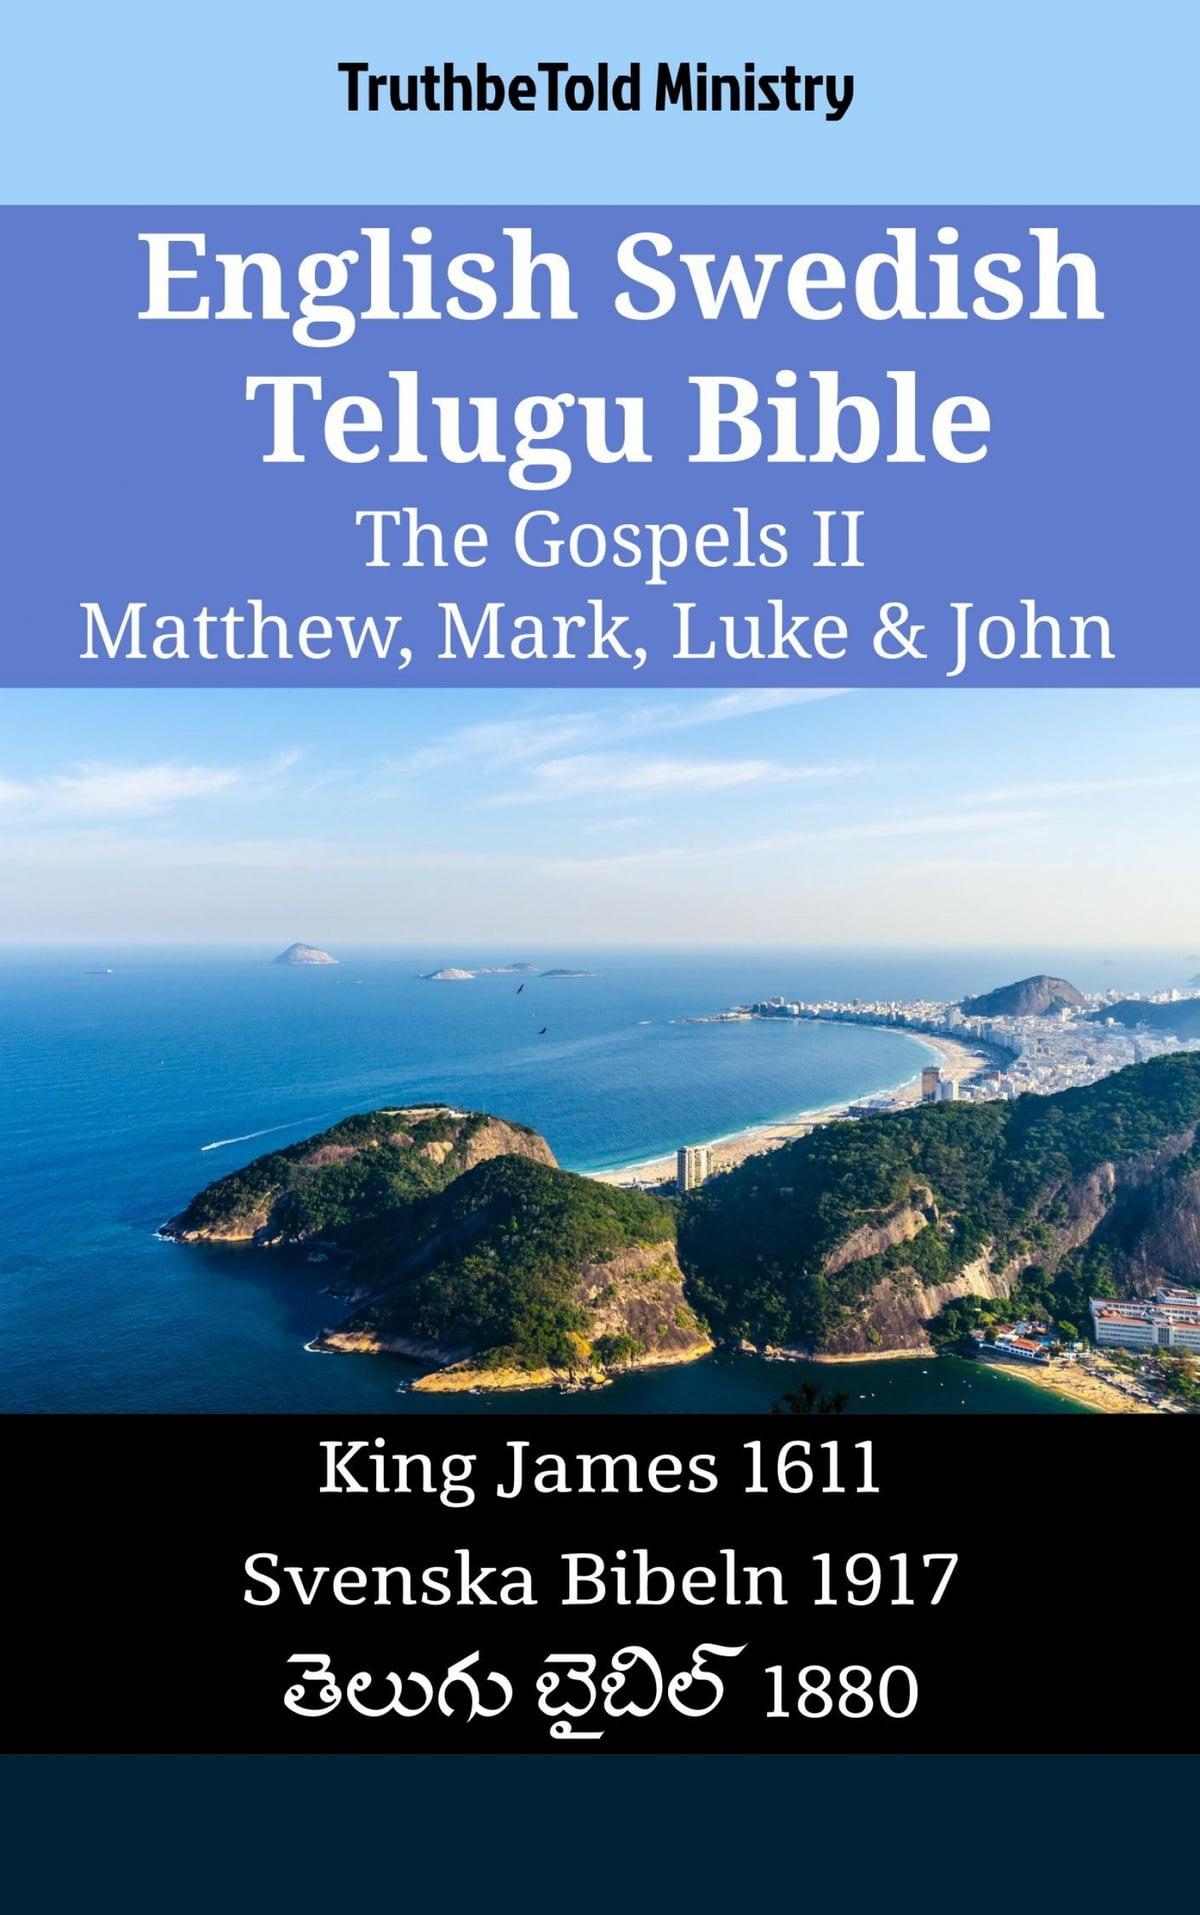 English Swedish Telugu Bible - The Gospels II - Matthew, Mark, Luke & John  ebook by TruthBeTold Ministry - Rakuten Kobo